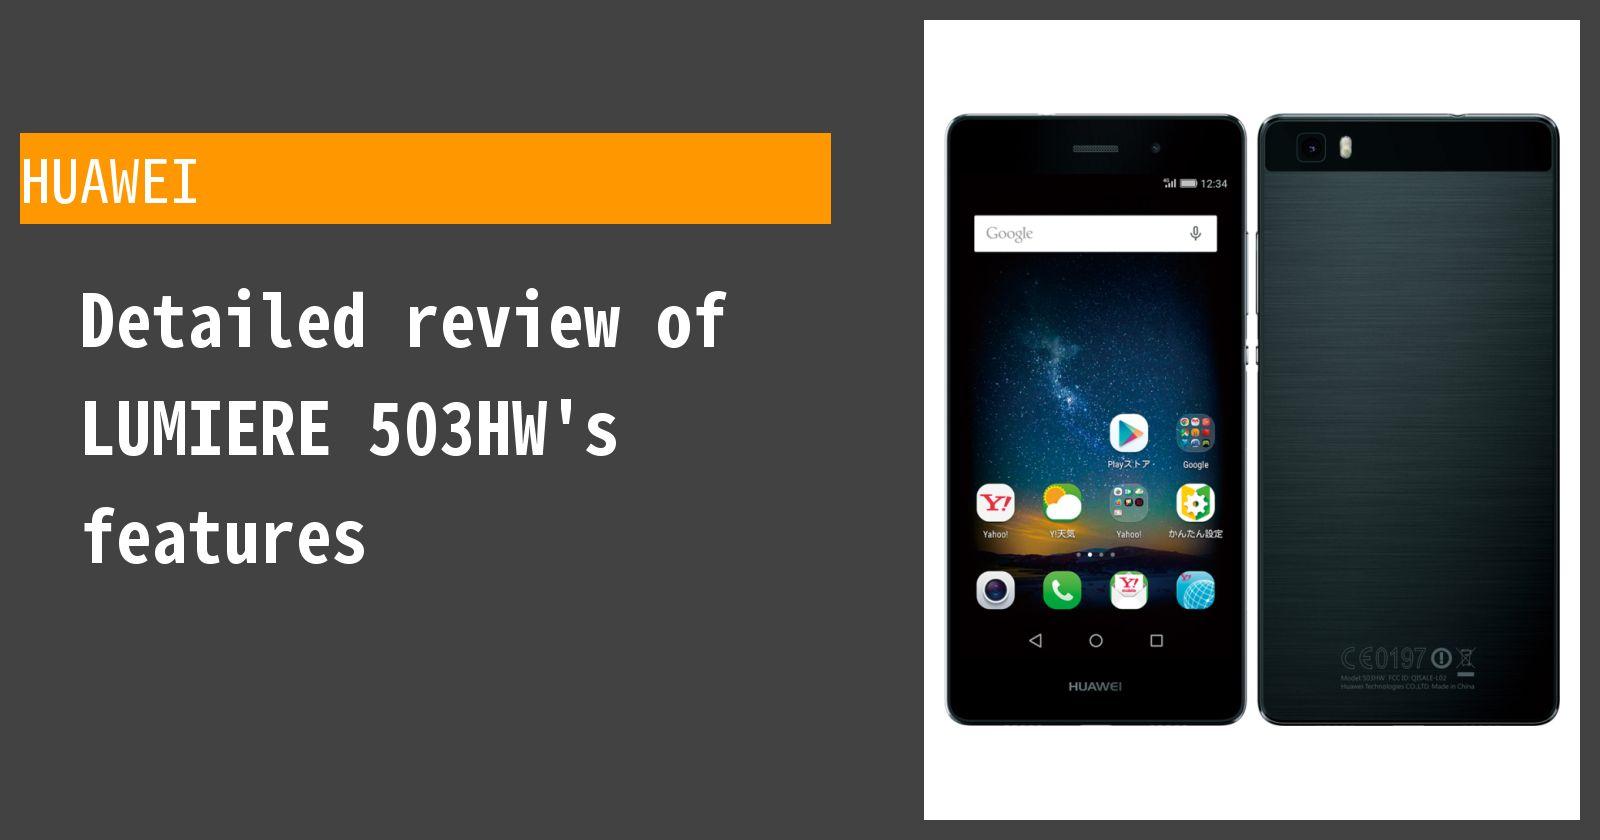 Detailed review of LUMIERE 503HW's features